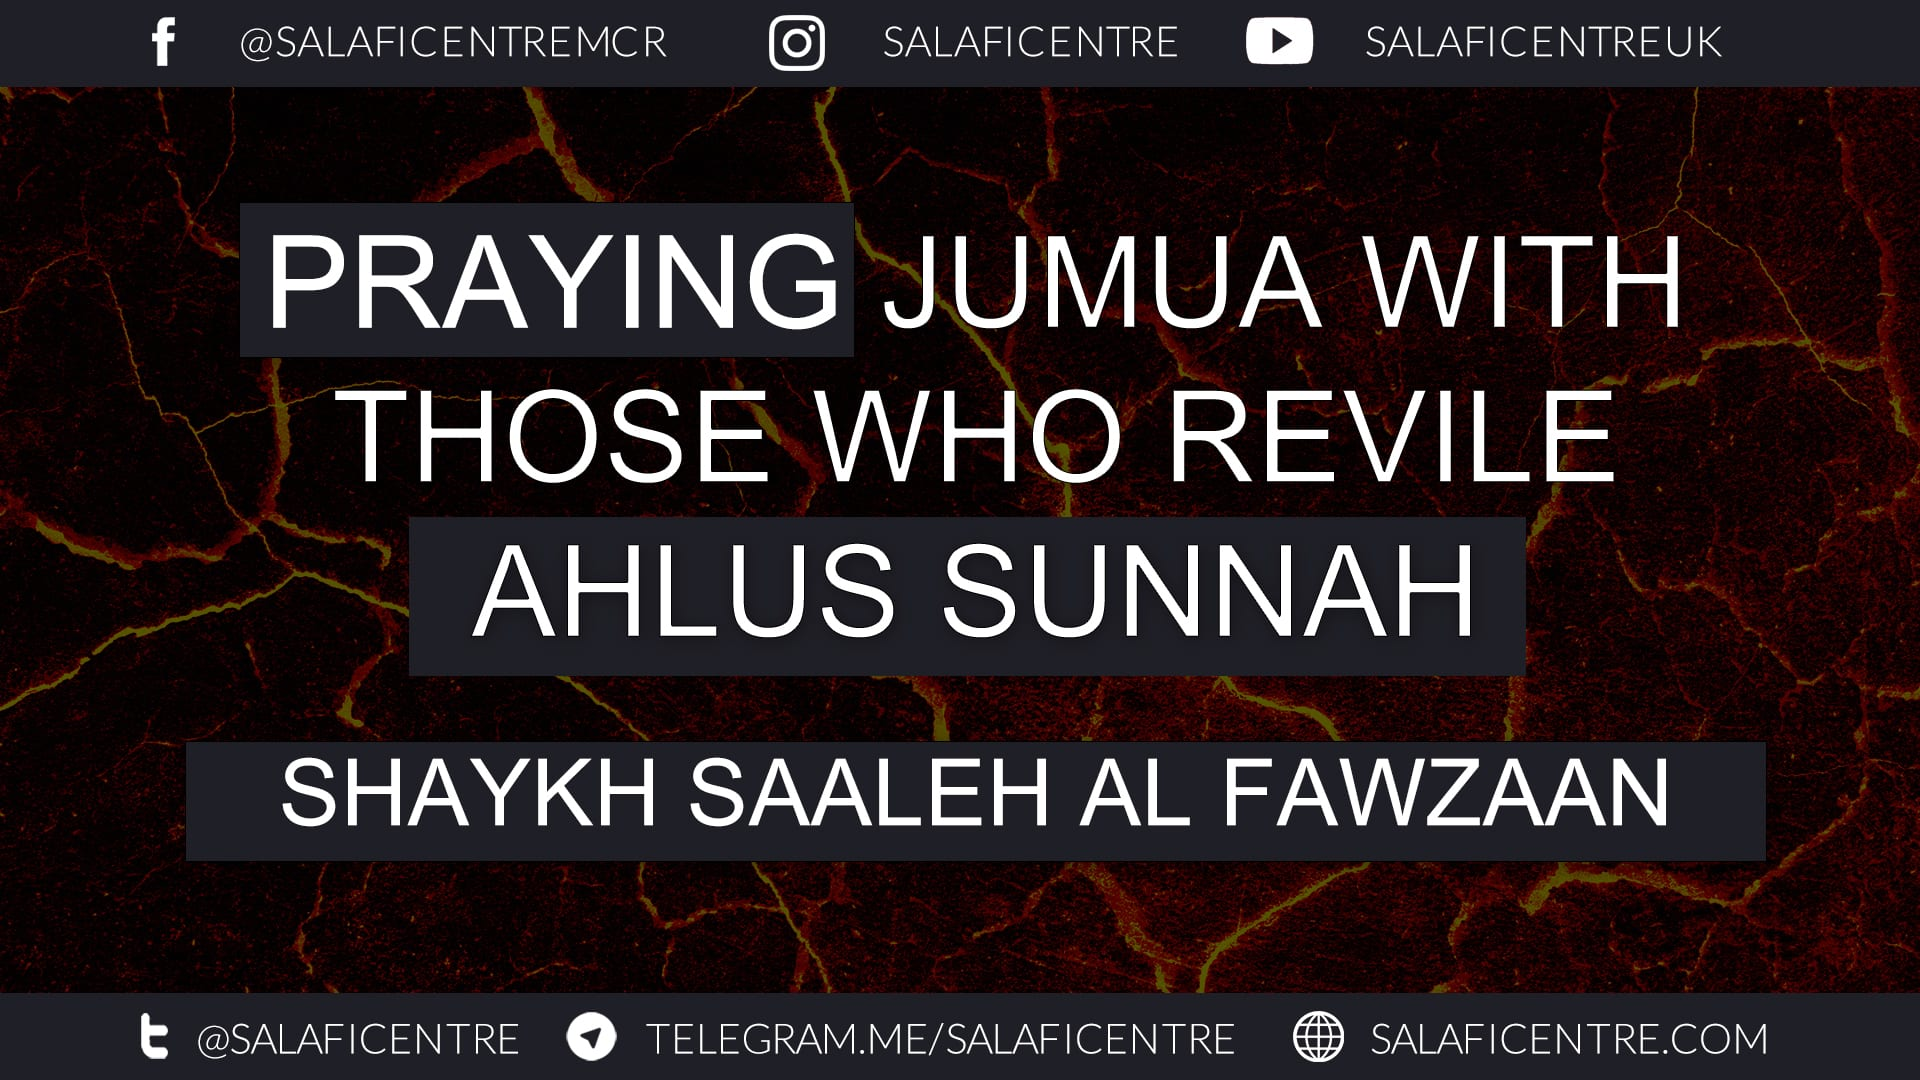 Do Not Pray with Those Who Revile Ahlus Sunnah – Shaykh Saaleh al Fawzaan